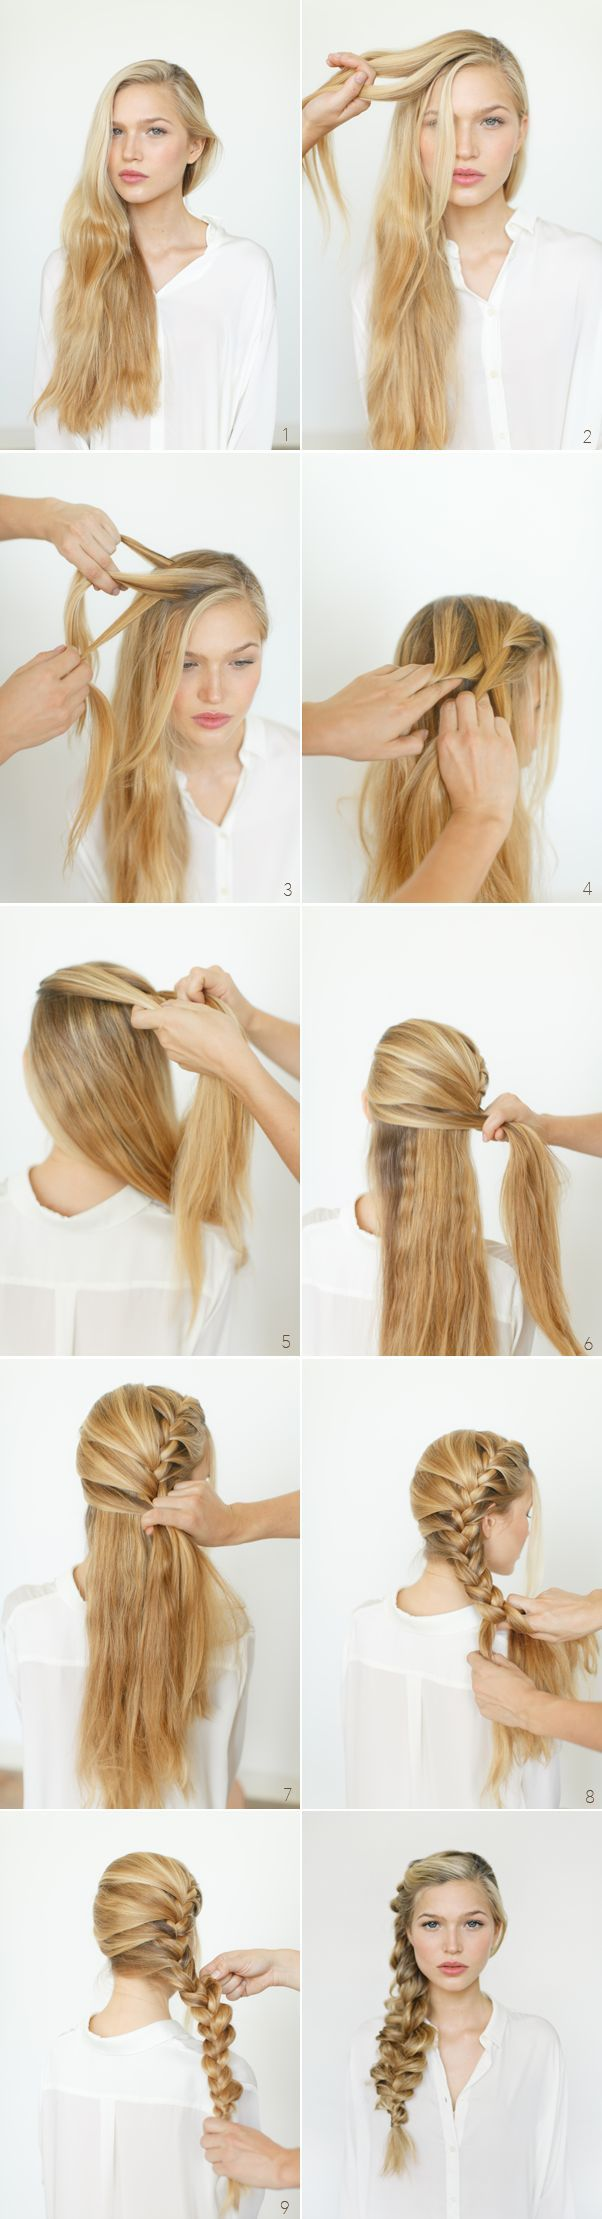 The 43 best hair and beauty images on pinterest hair dos hair 17 romantic hairstyle ideas and tutorials for the aphrodite cabin ccuart Gallery